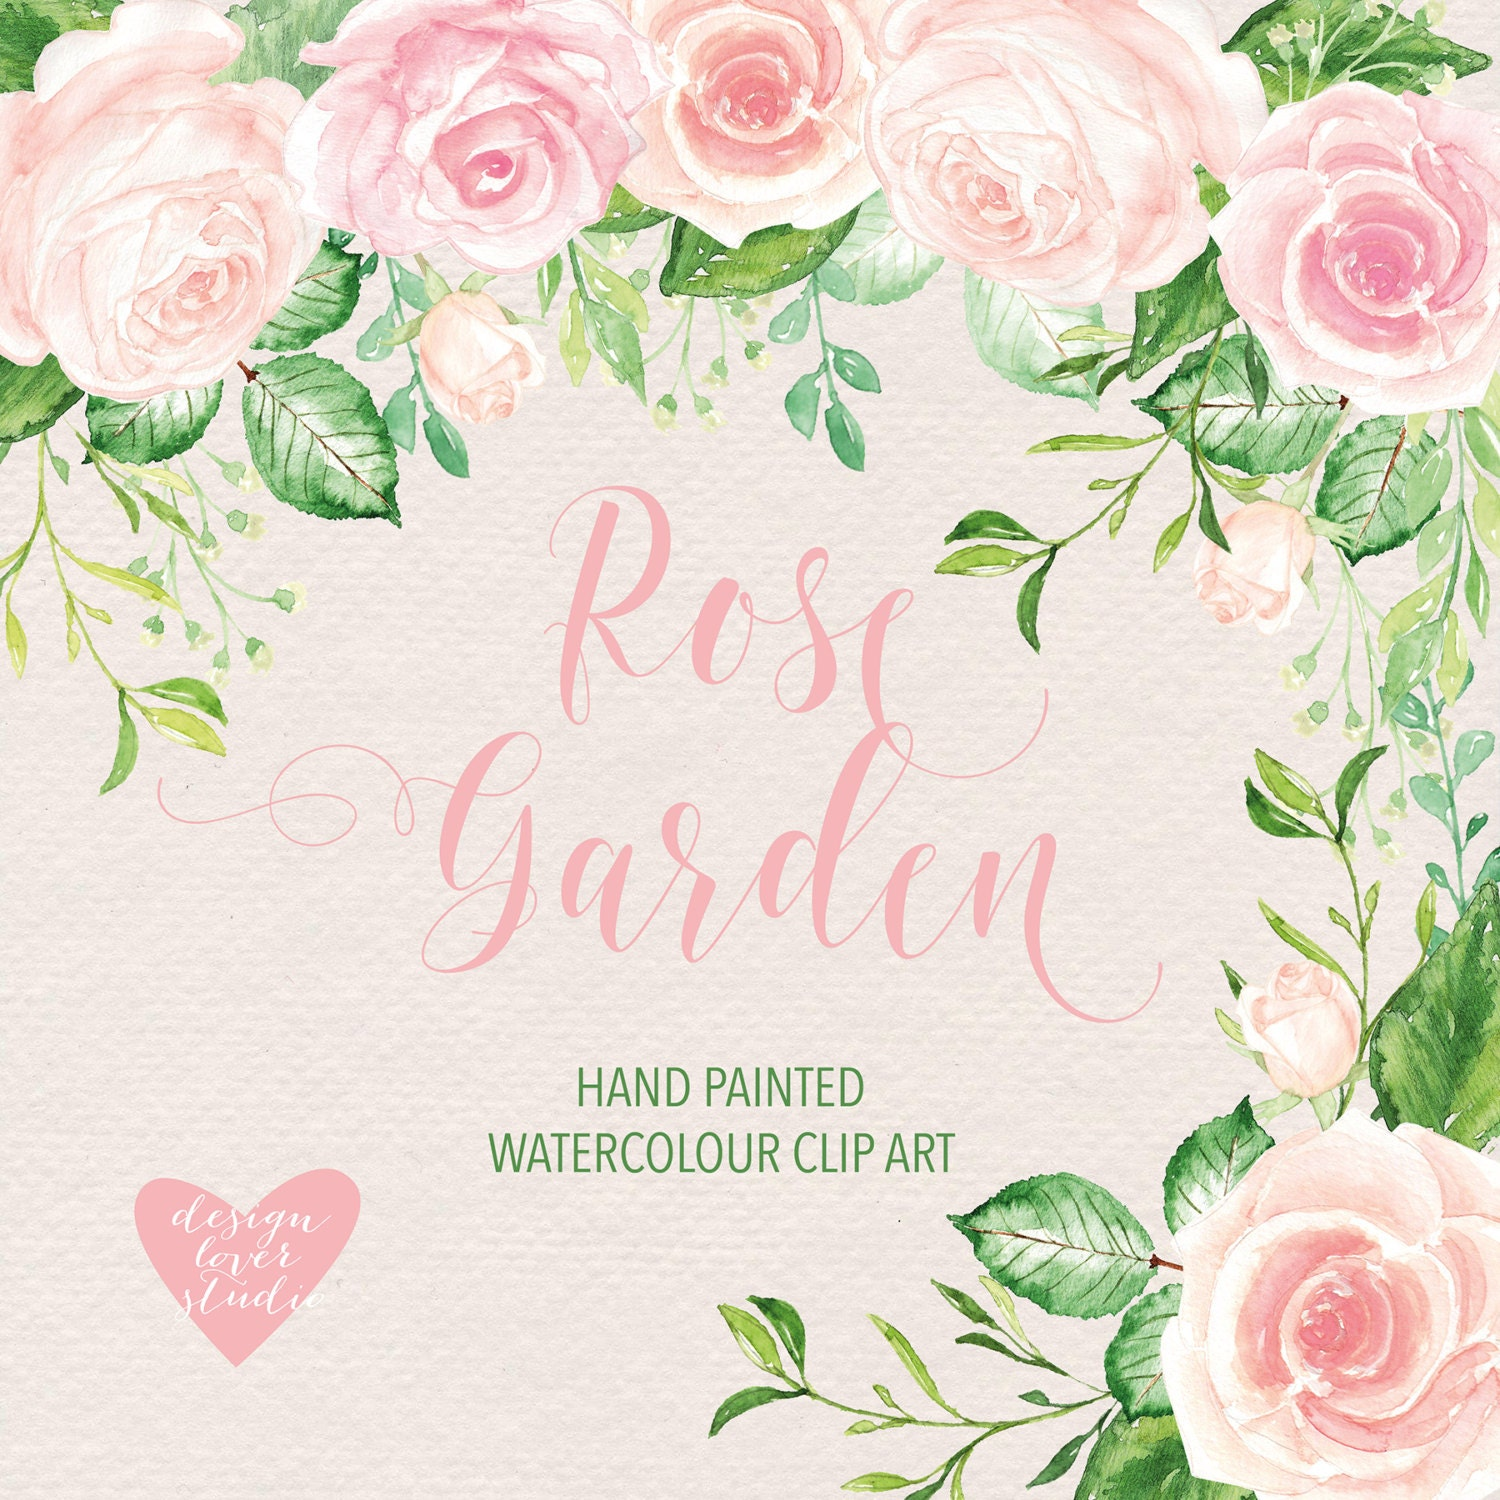 watercolor rose blush clipart watercolor flower pink